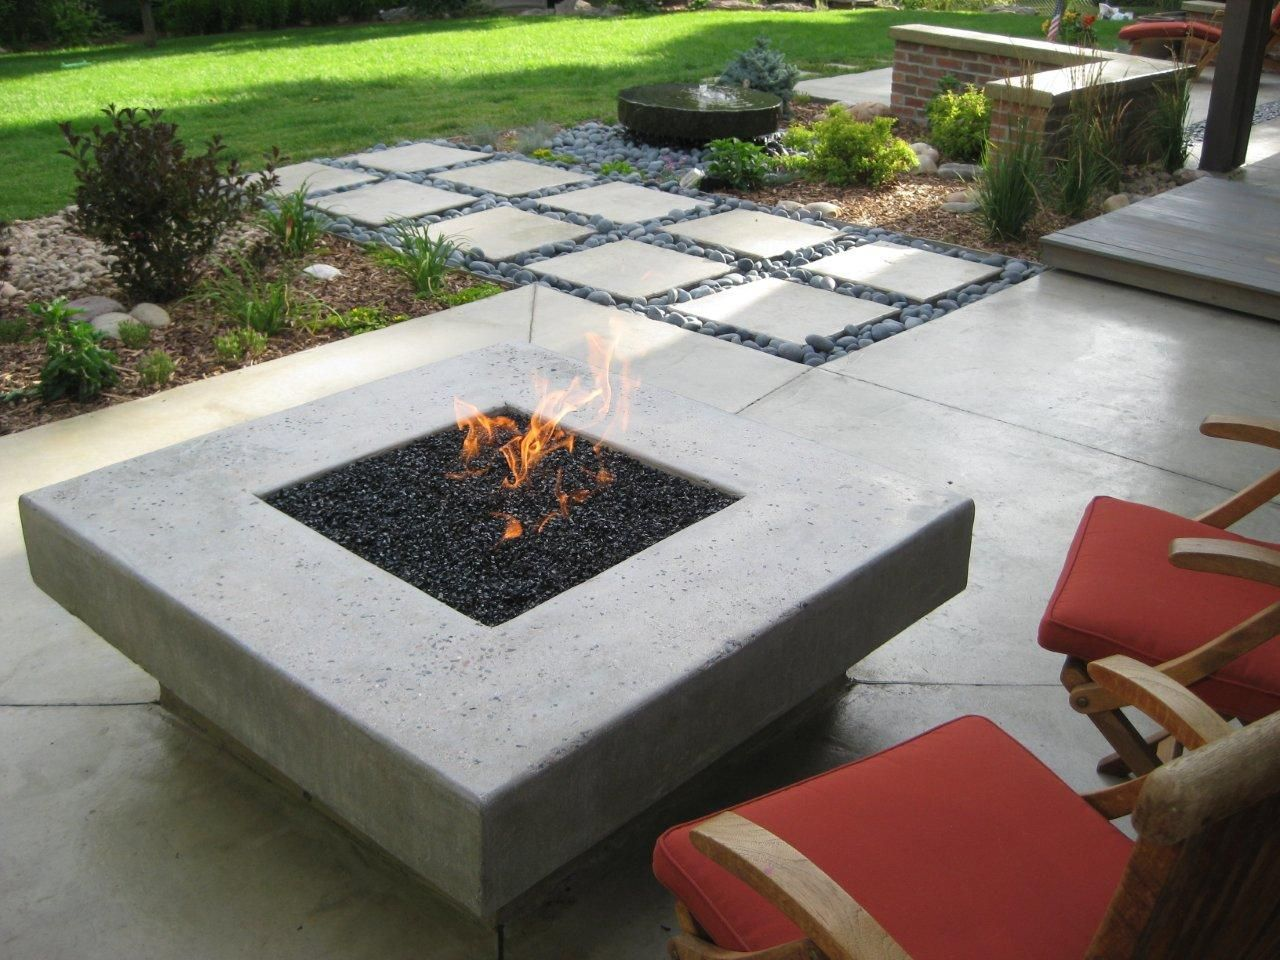 Contemporary Built In Seating With Fire Pit Backyard Seating Area Modern Backyard Landscaping Backyard Seating